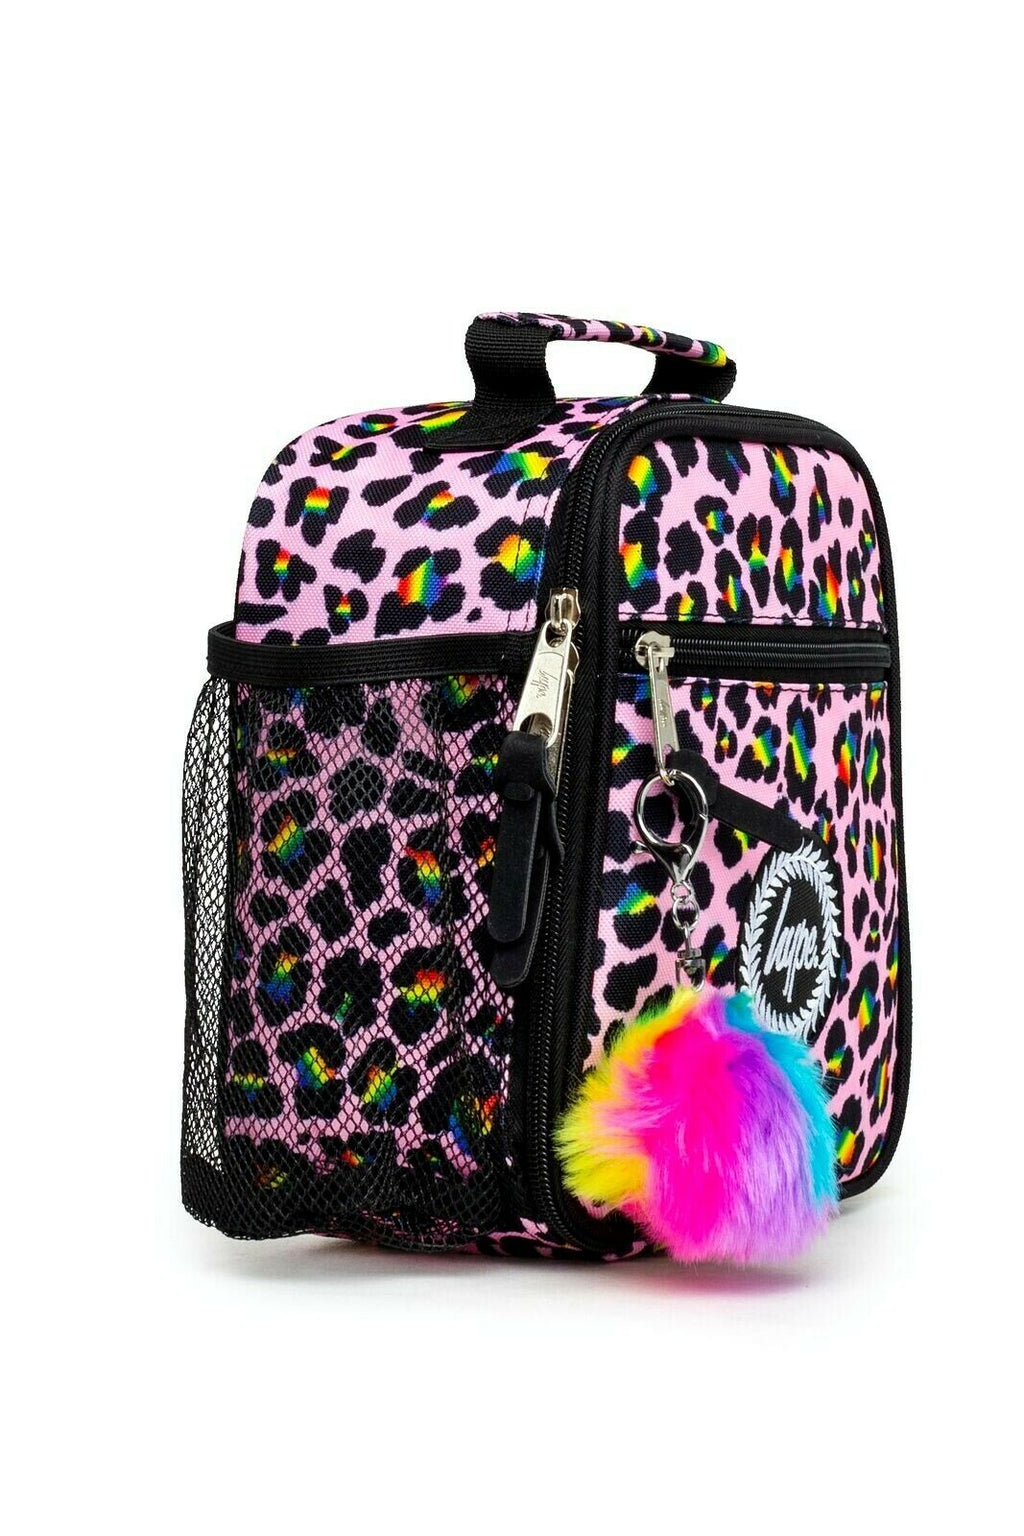 Rainbow Leopard Lunch Box